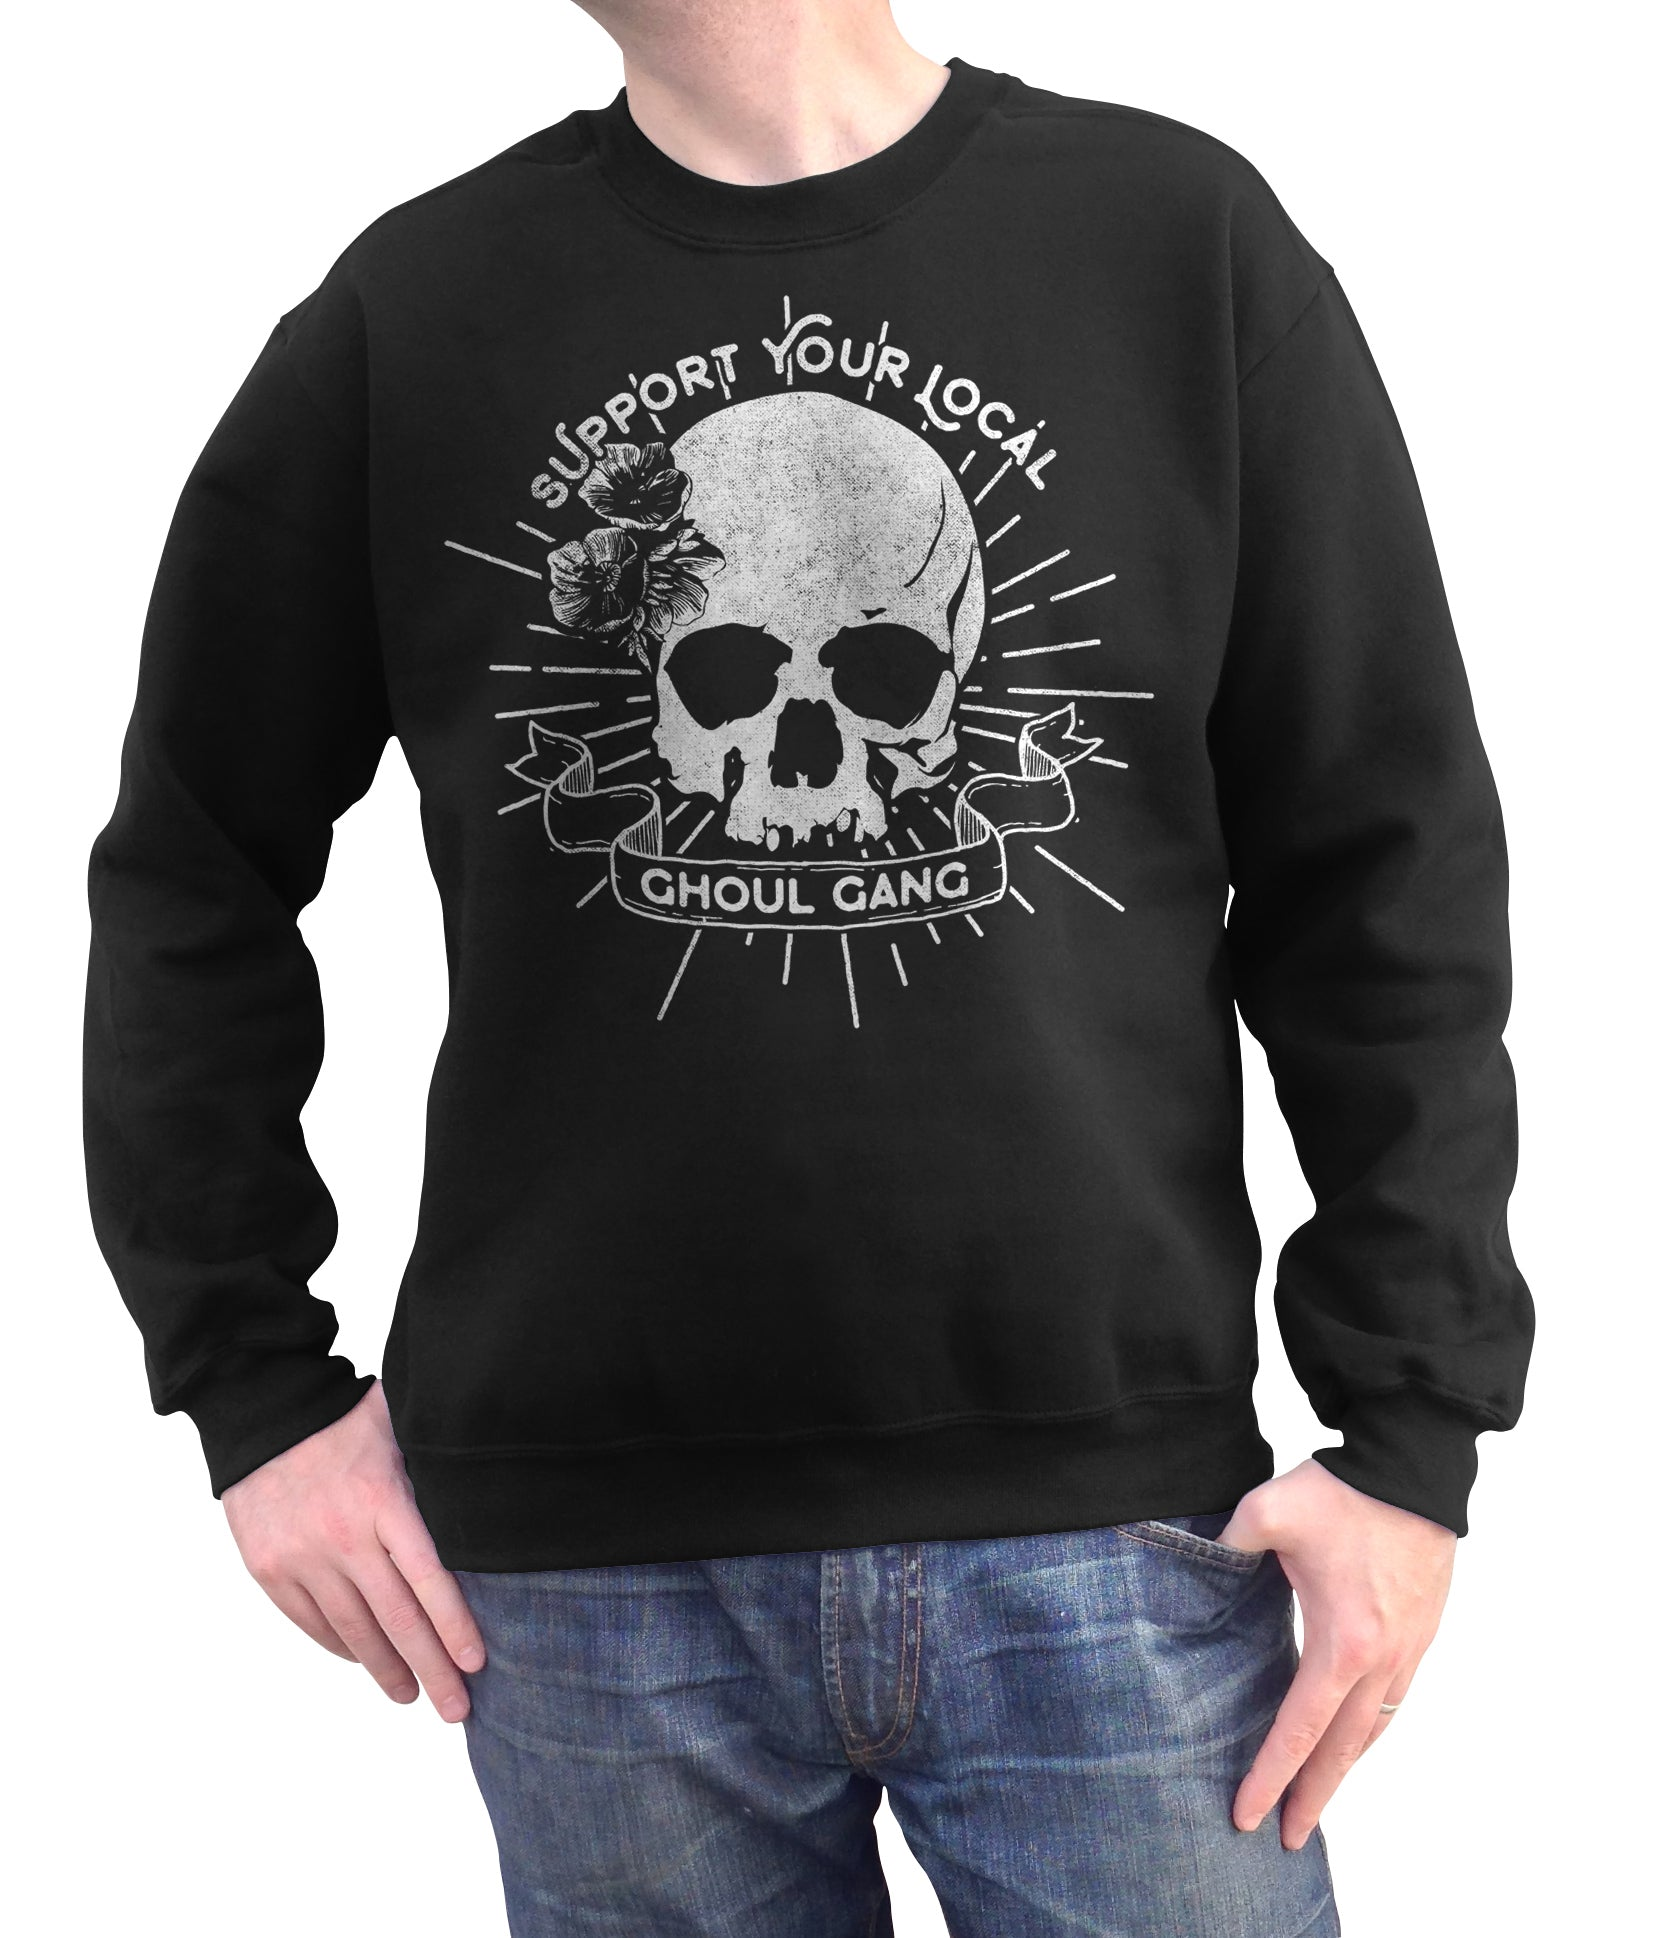 Unisex Support Your Local Ghoul Gang Sweatshirt